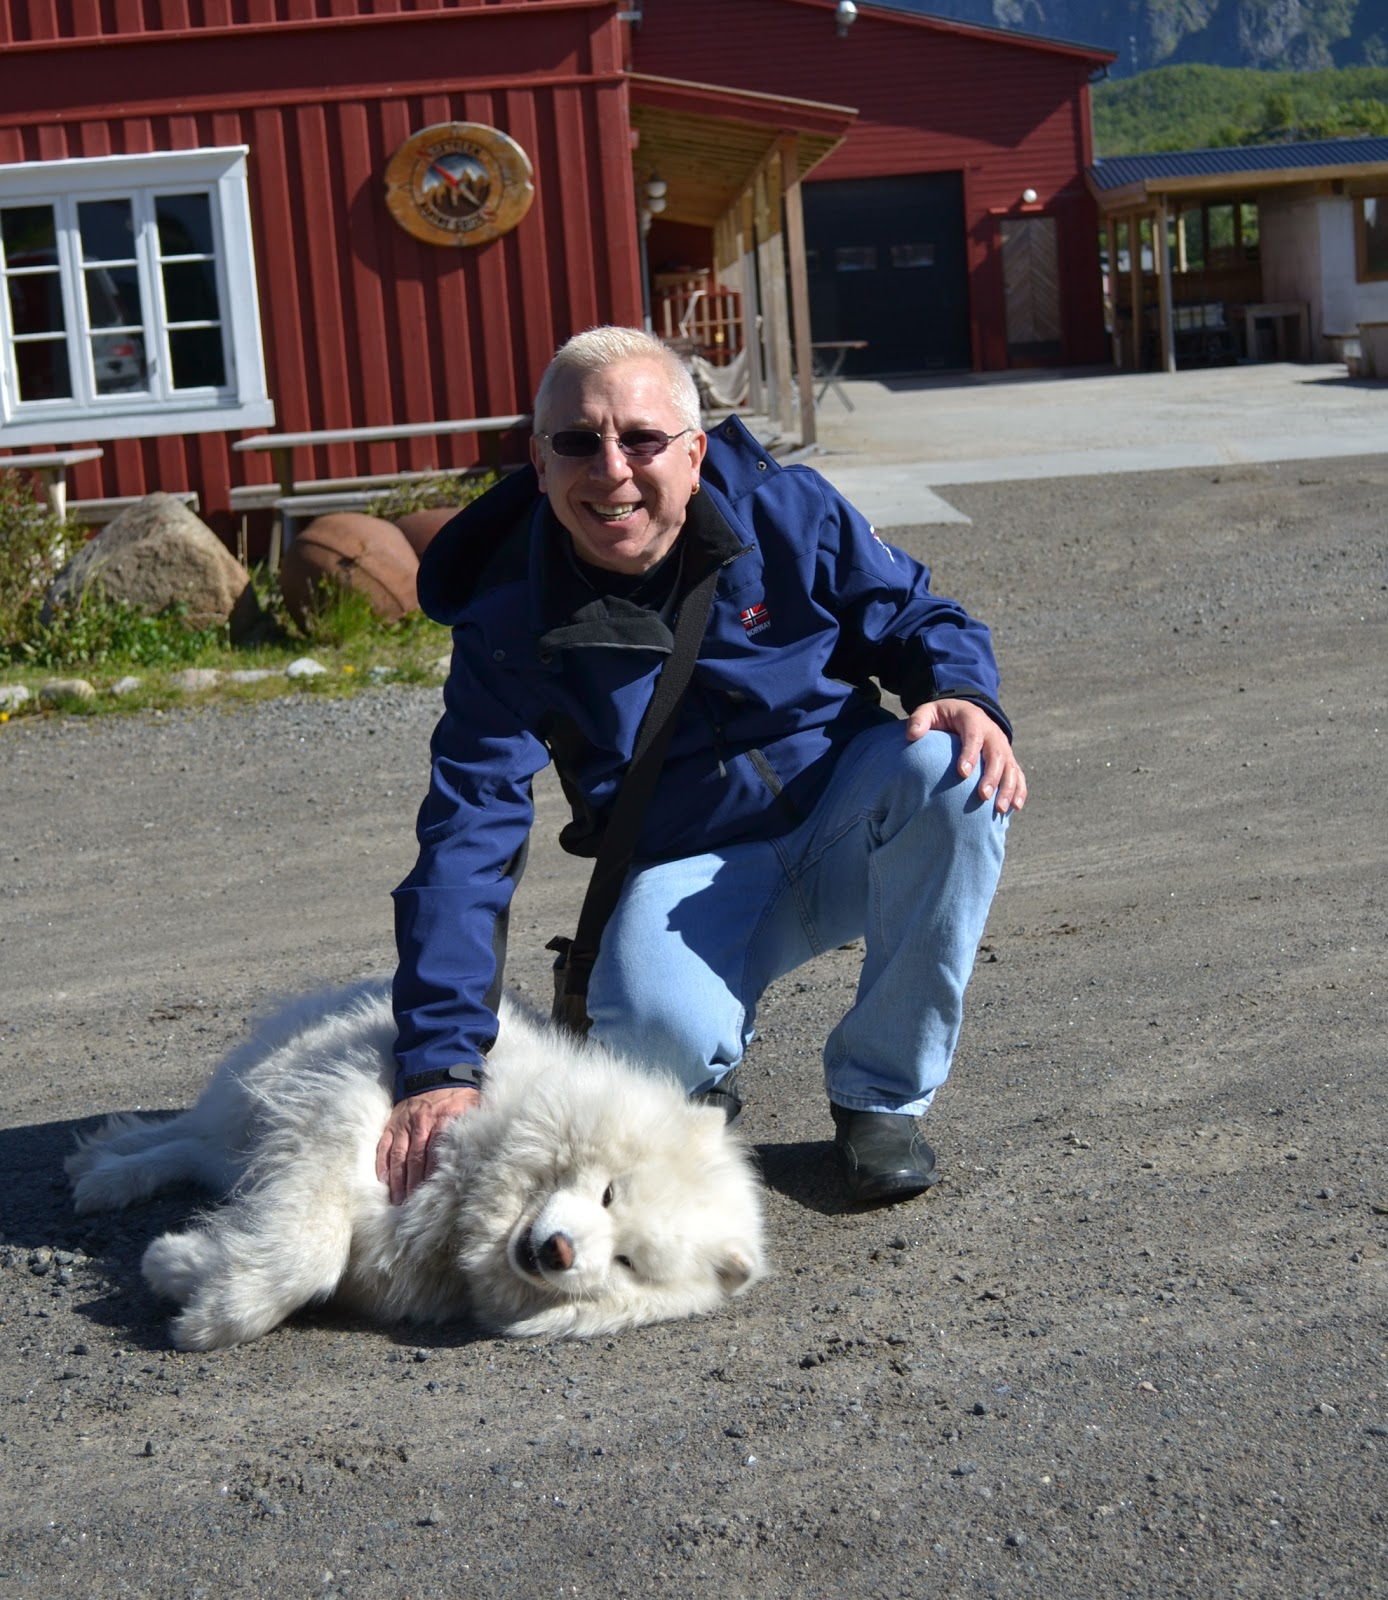 Nanook enjoys a gentle rub as we bid farewell to Kalle I Lofoten.